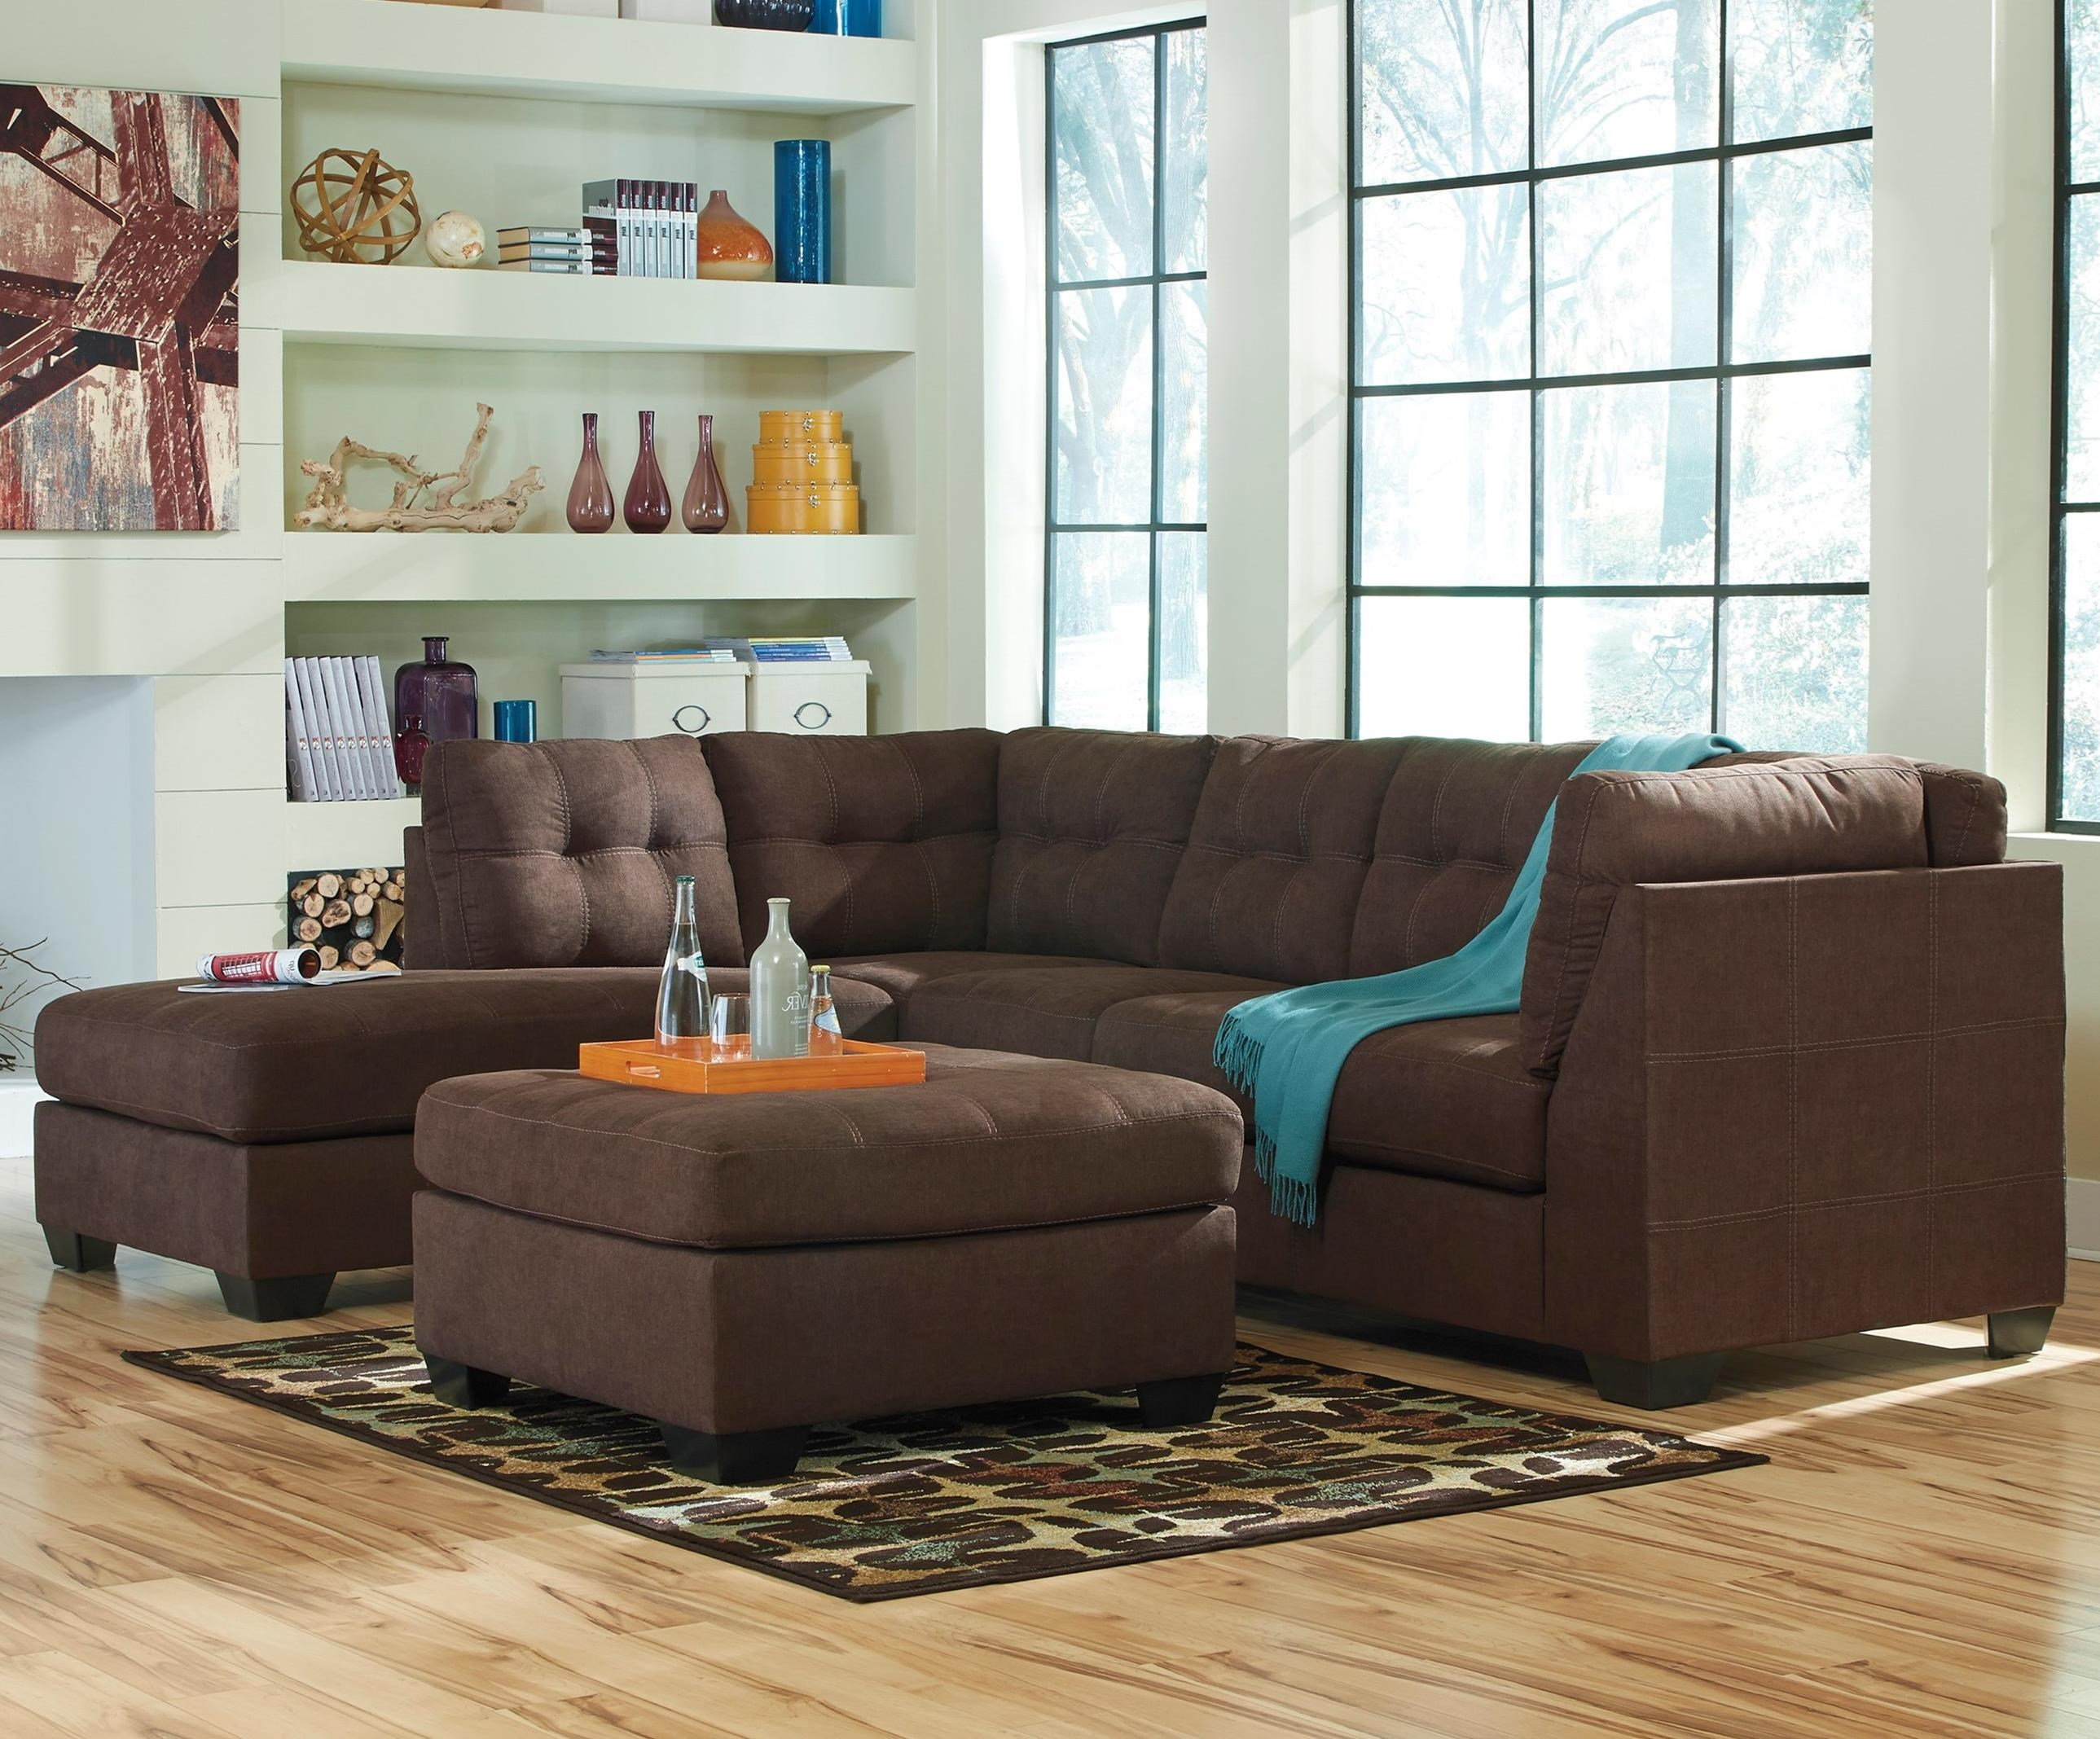 Maier Living Room Group by Benchcraft at Miller Waldrop Furniture and Decor